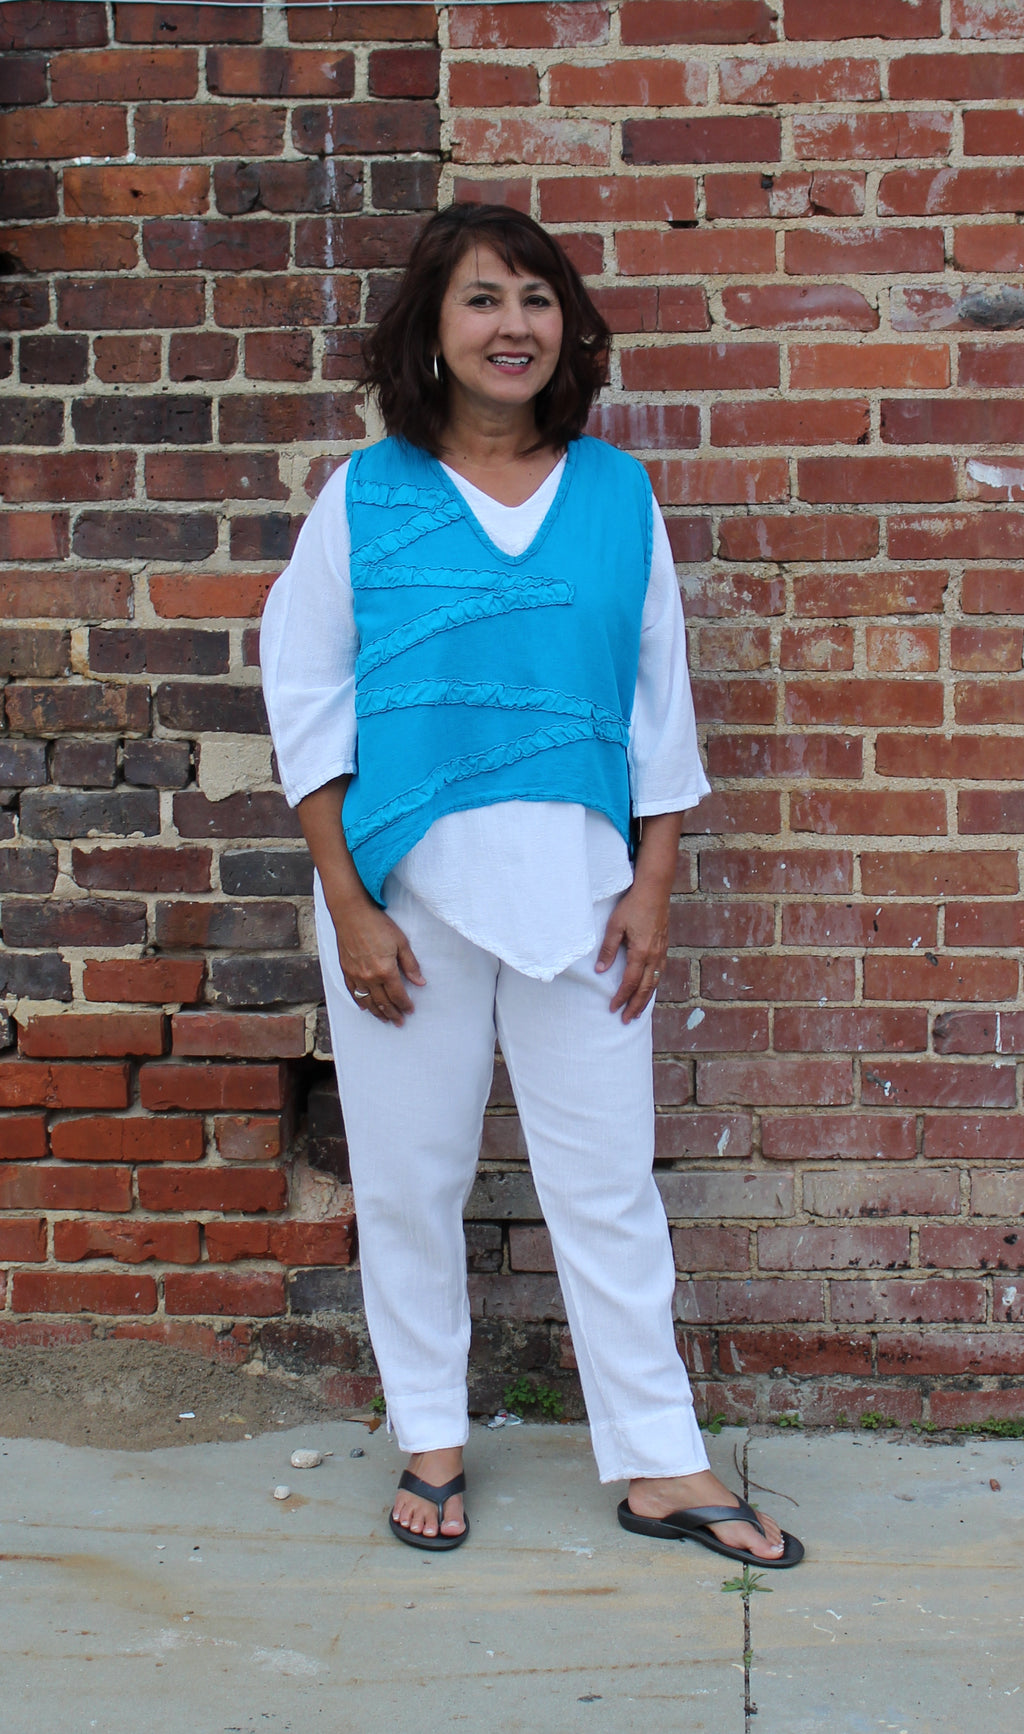 Oh My Gauze! Star Vest in Turquoise